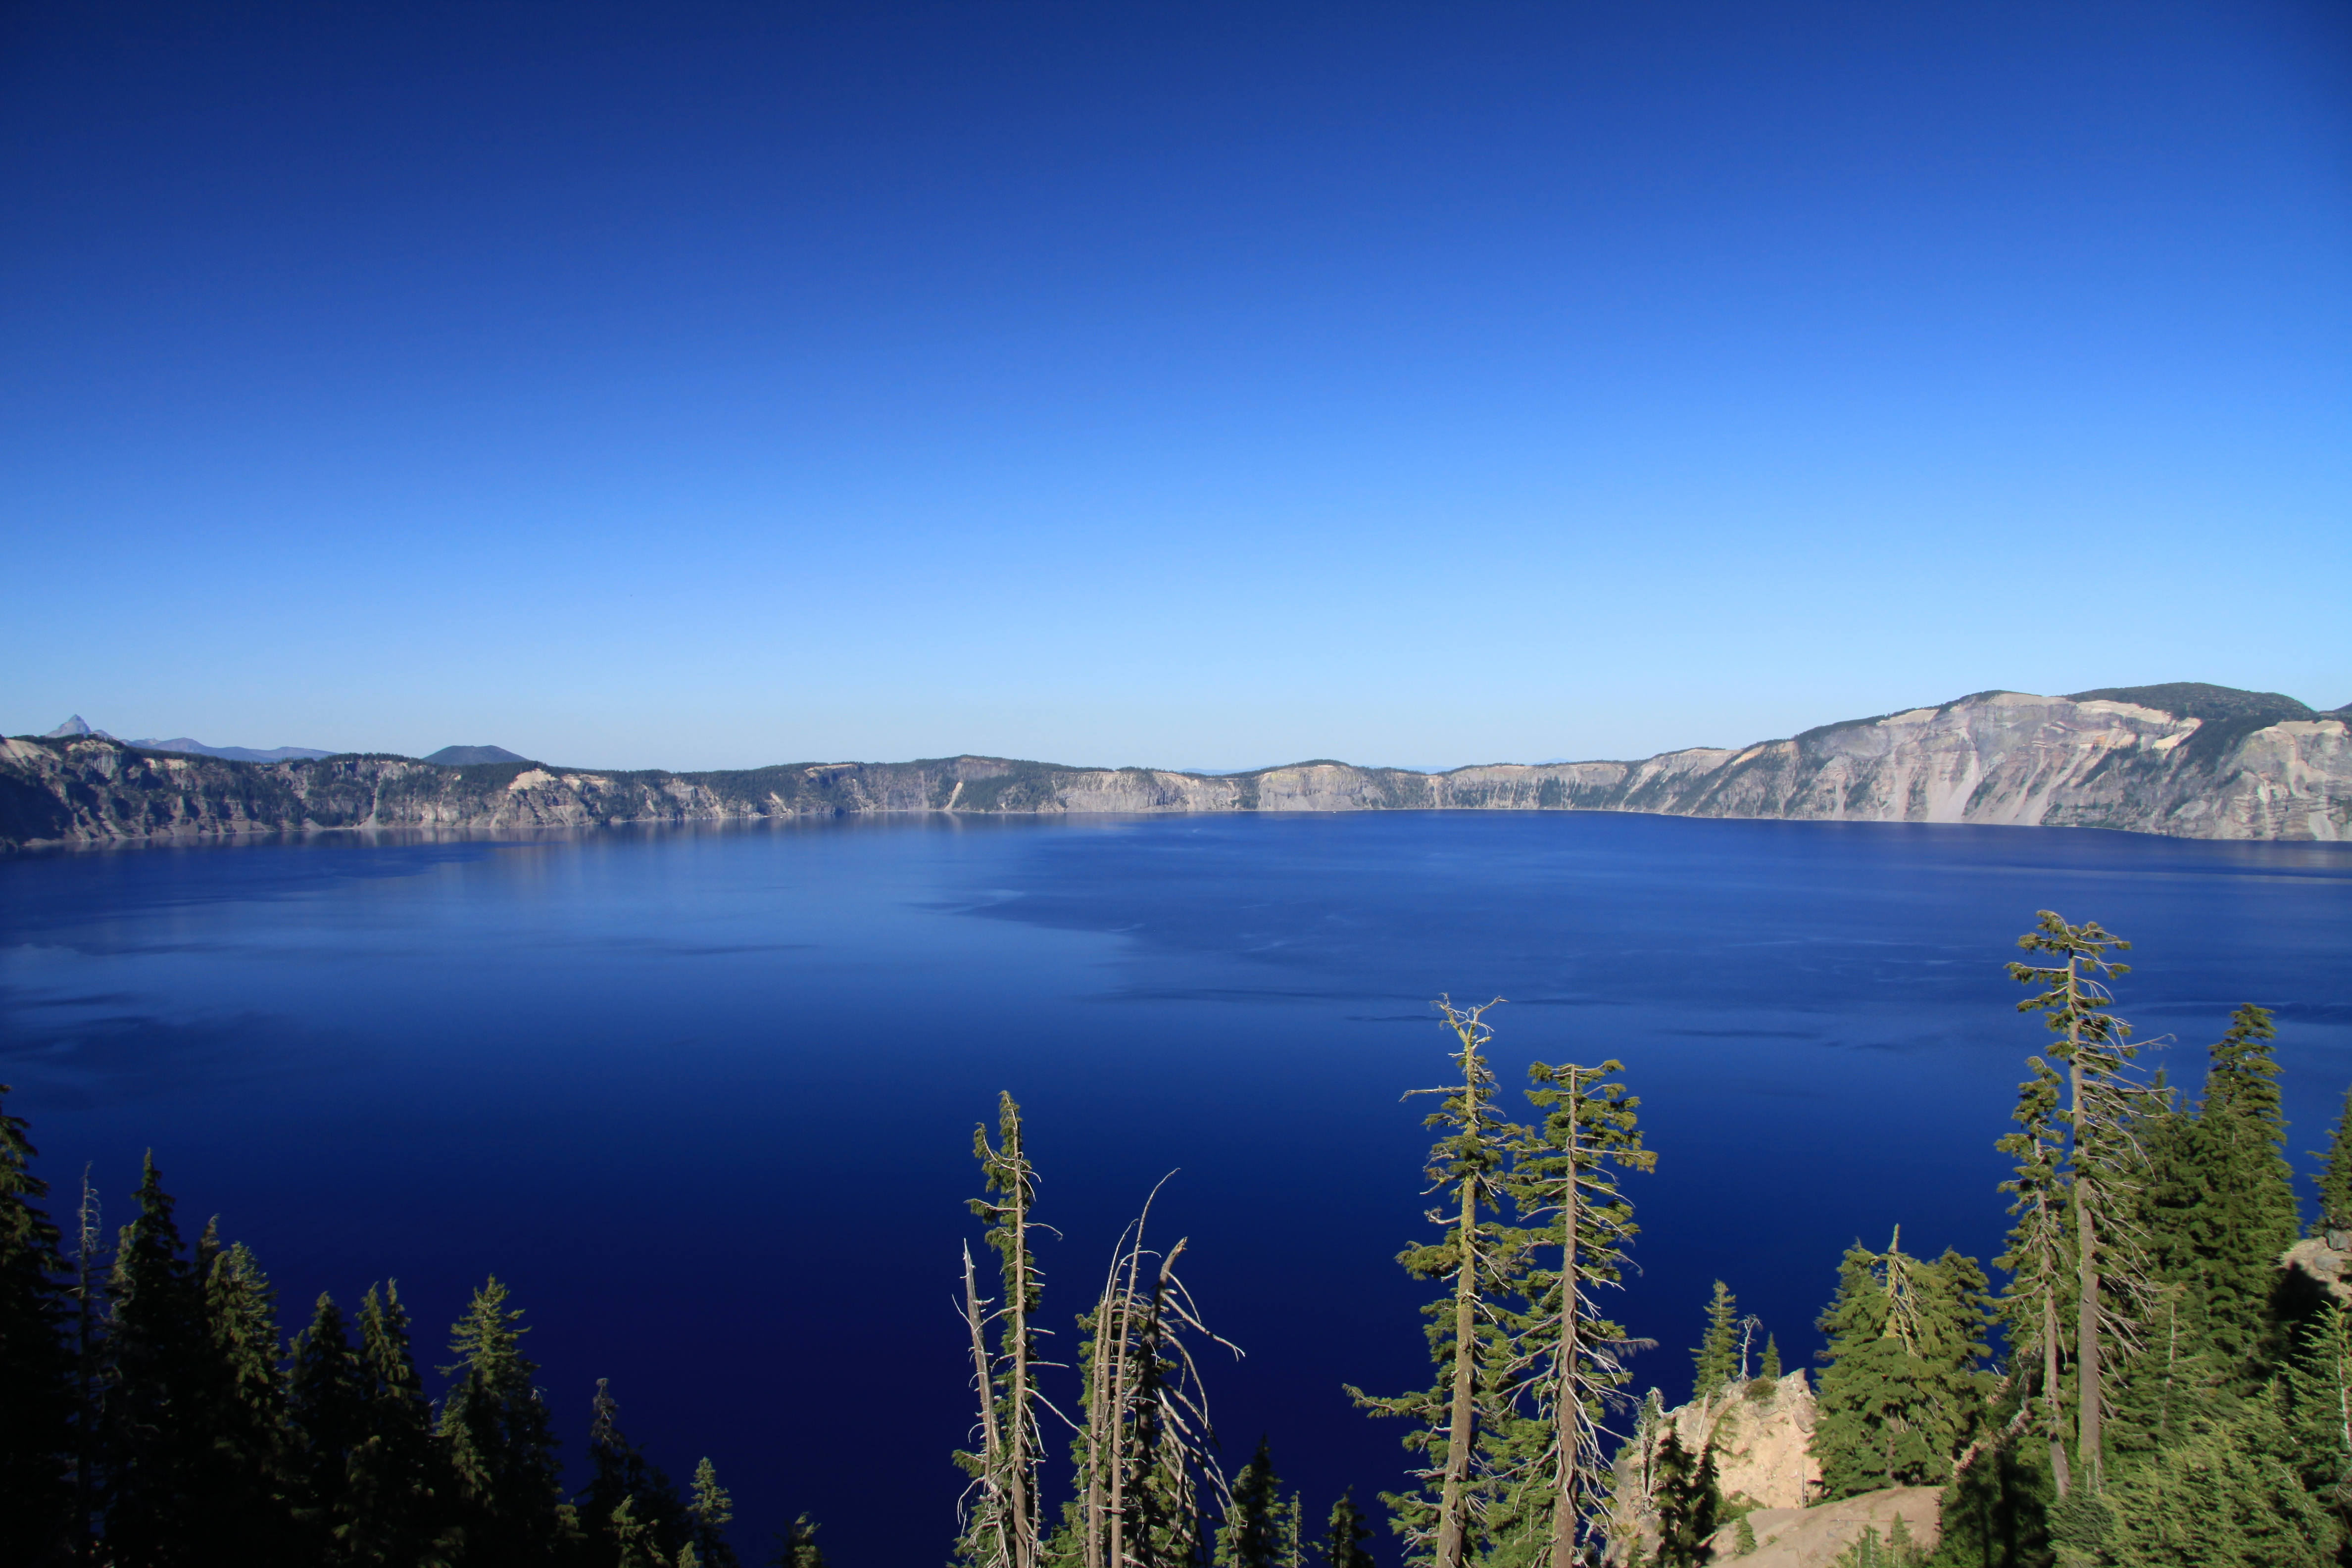 crater lake online hookup & dating For millions of years the crater lake region was a land of fire,  in recent years, carbon-14 dating has provided more precise information.